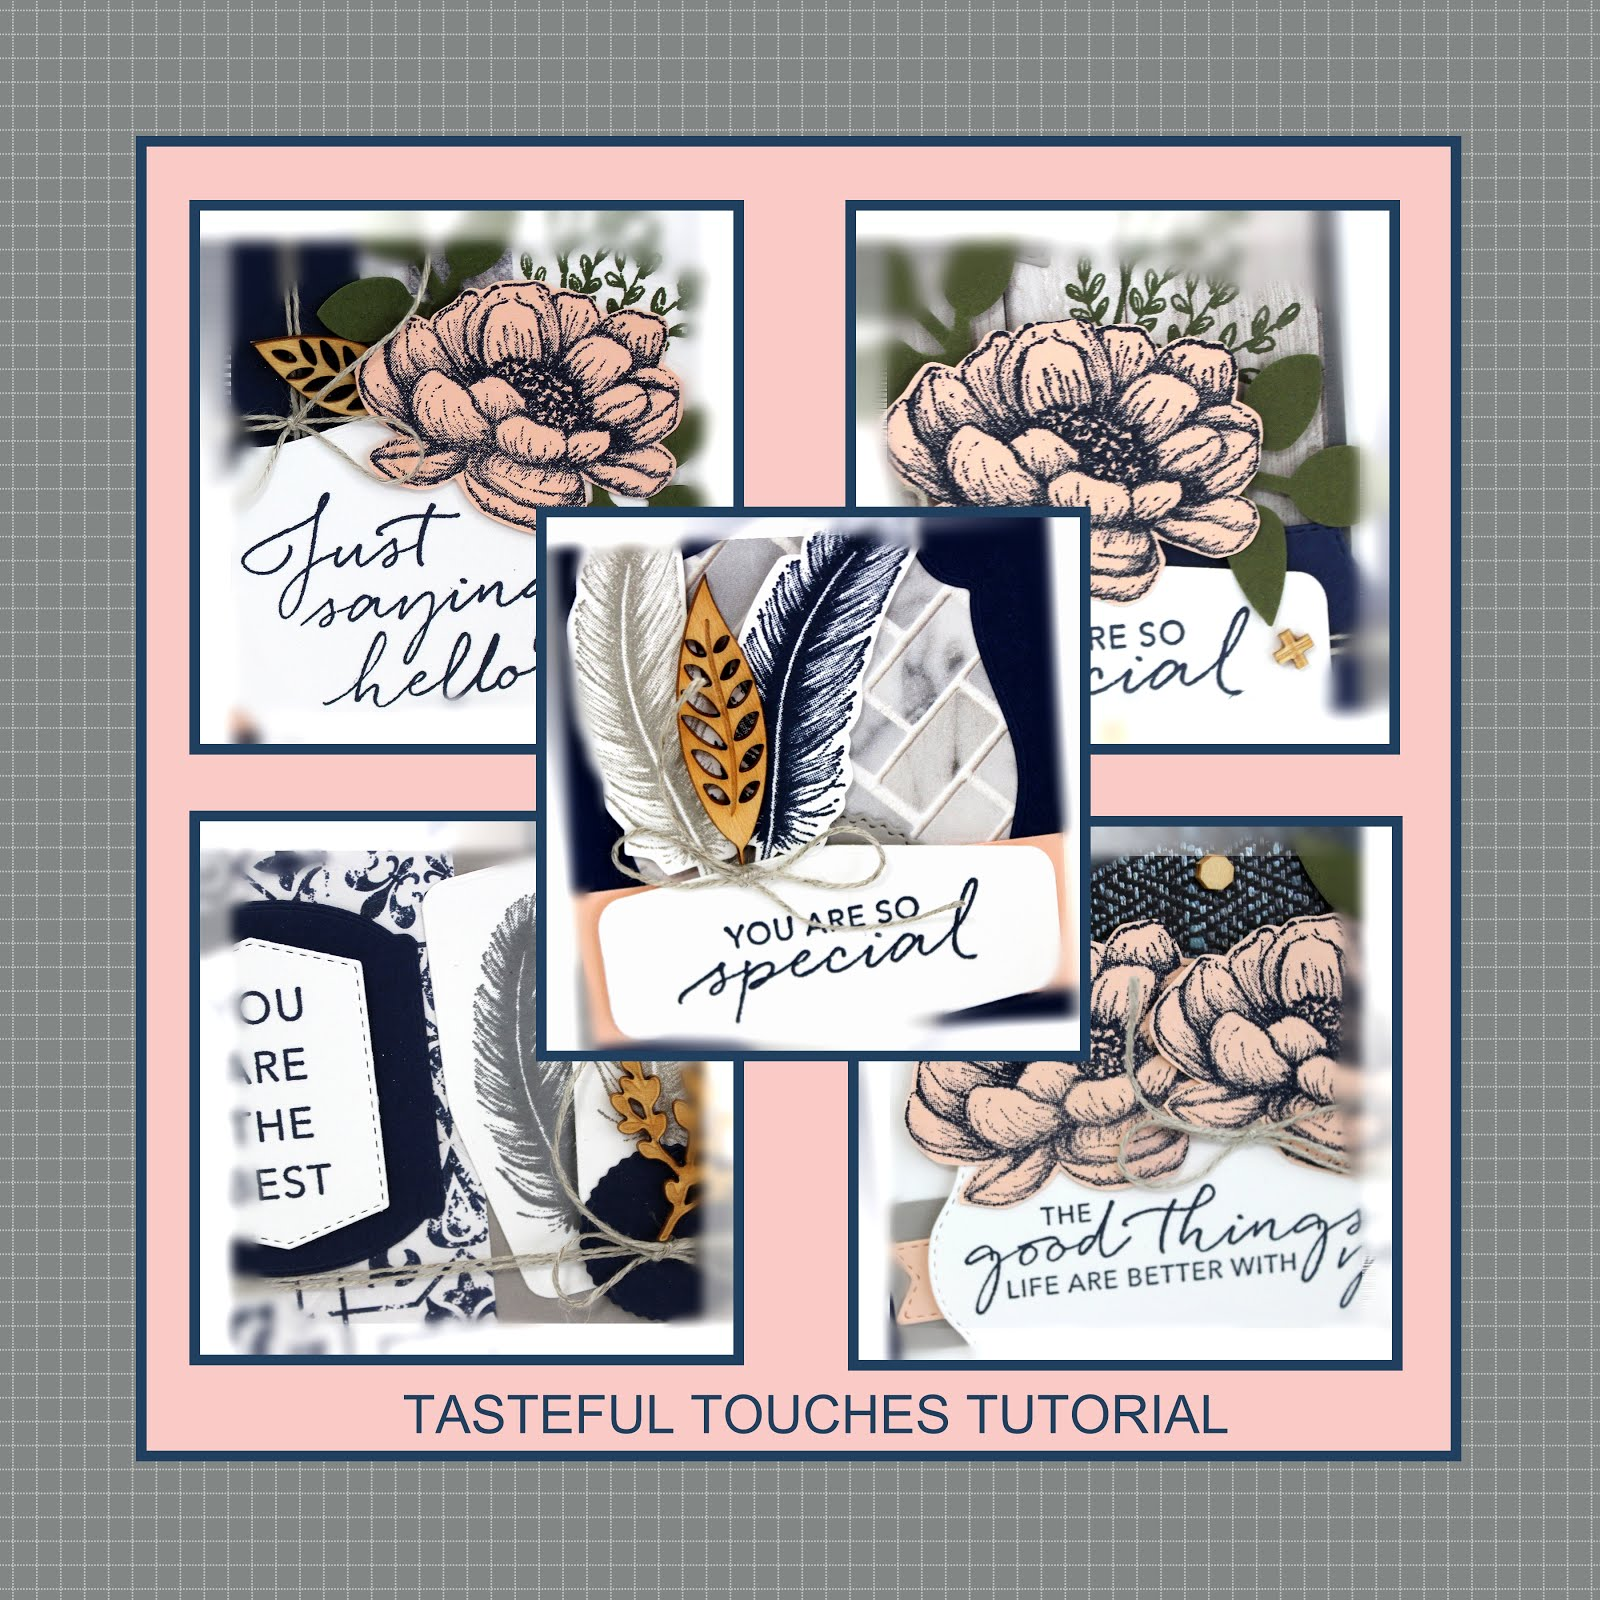 August 2020 Tasteful Touches Tutorial